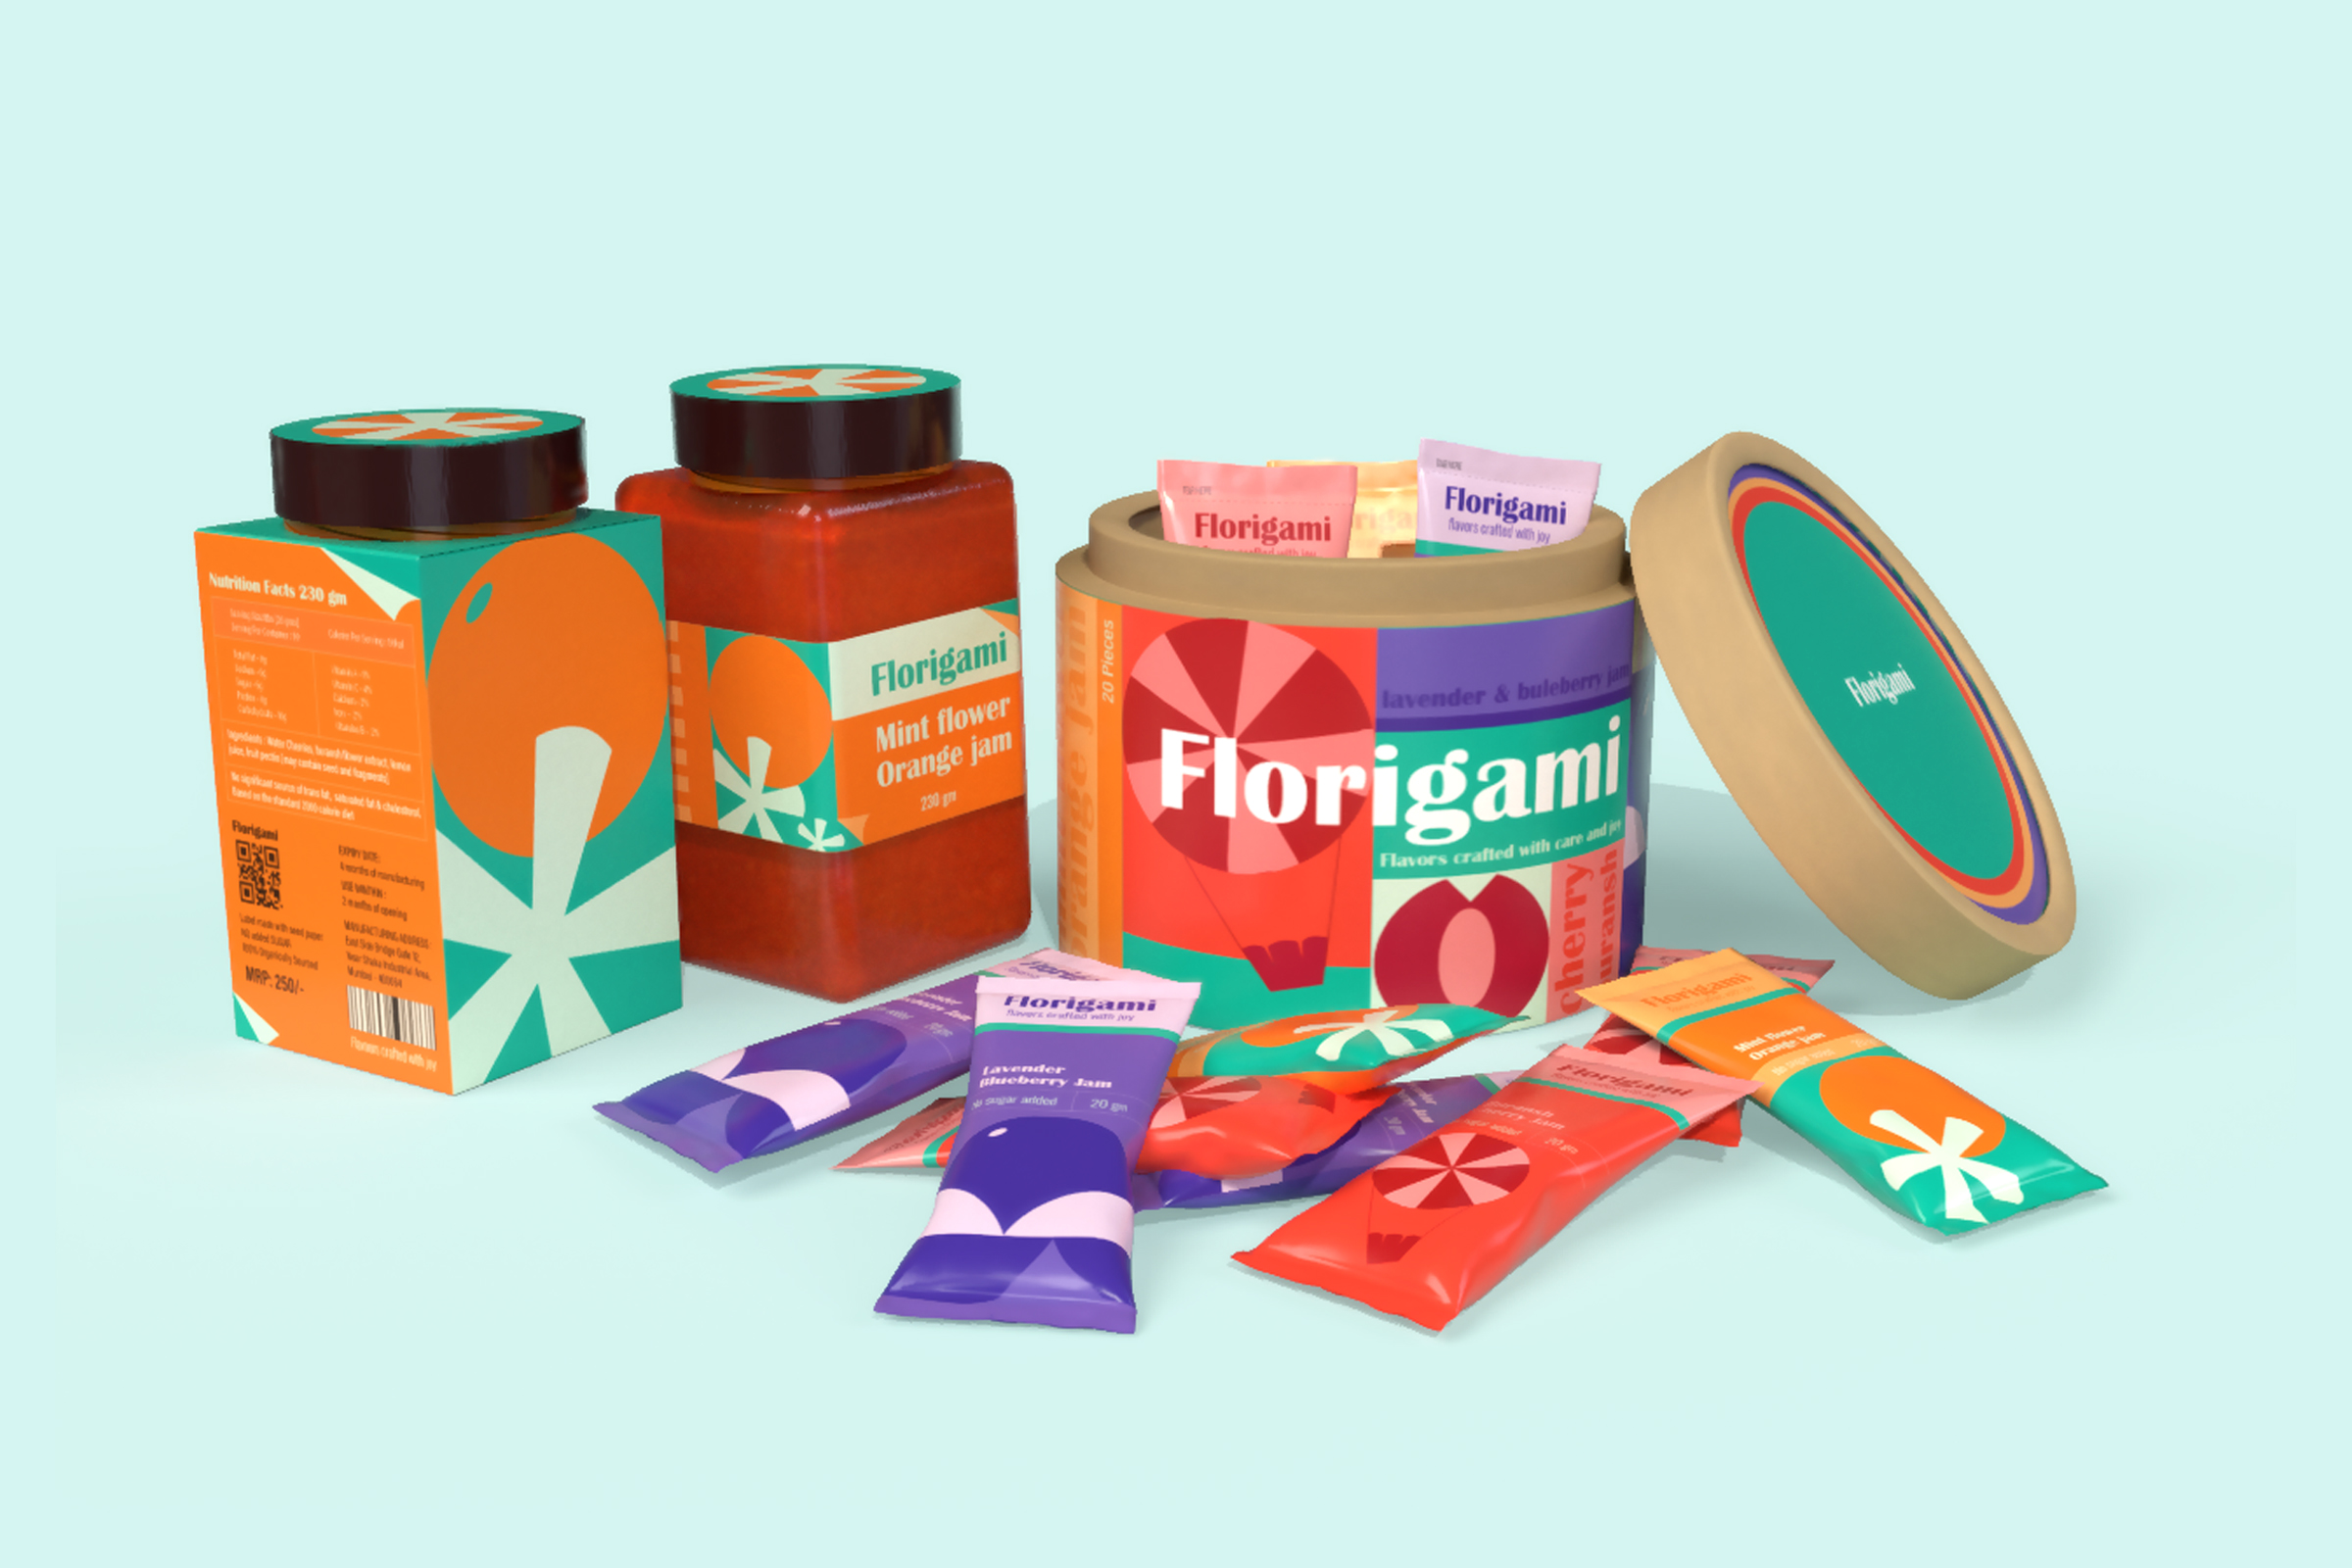 Student Brand and Packaging Design Concept for Florigami Fower and Fruit Fusion Jams